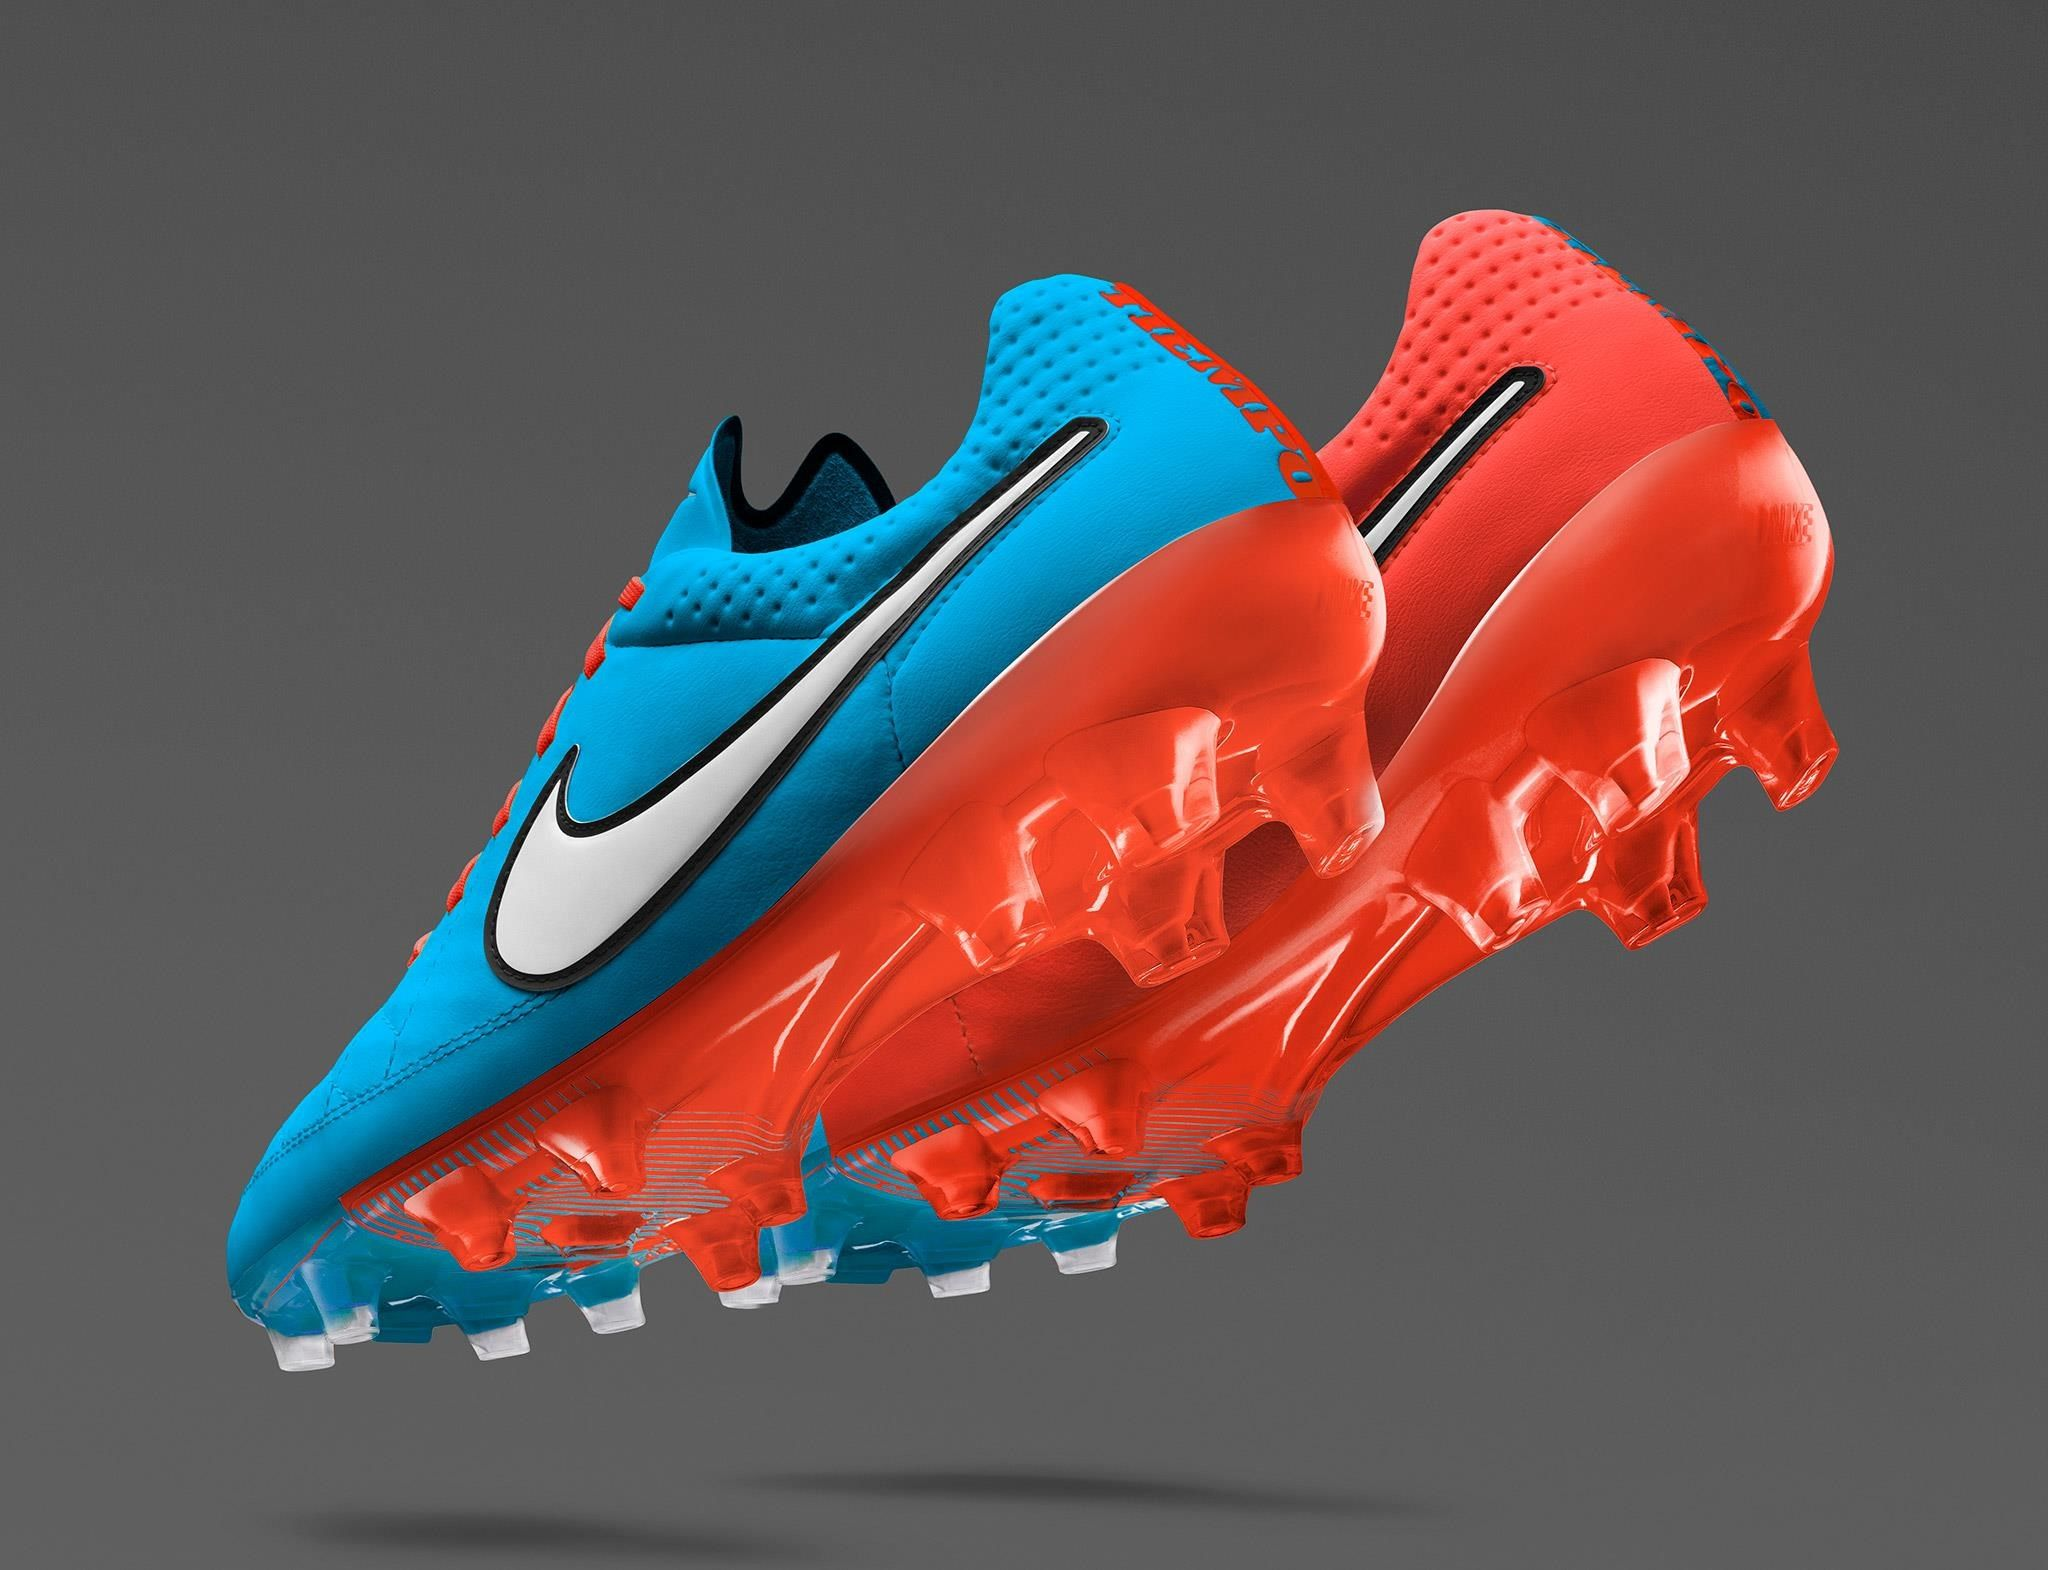 Nike Desktop Wallpaper Hd Wallpapers Nike Football Boots Soccer Boots Football Boots